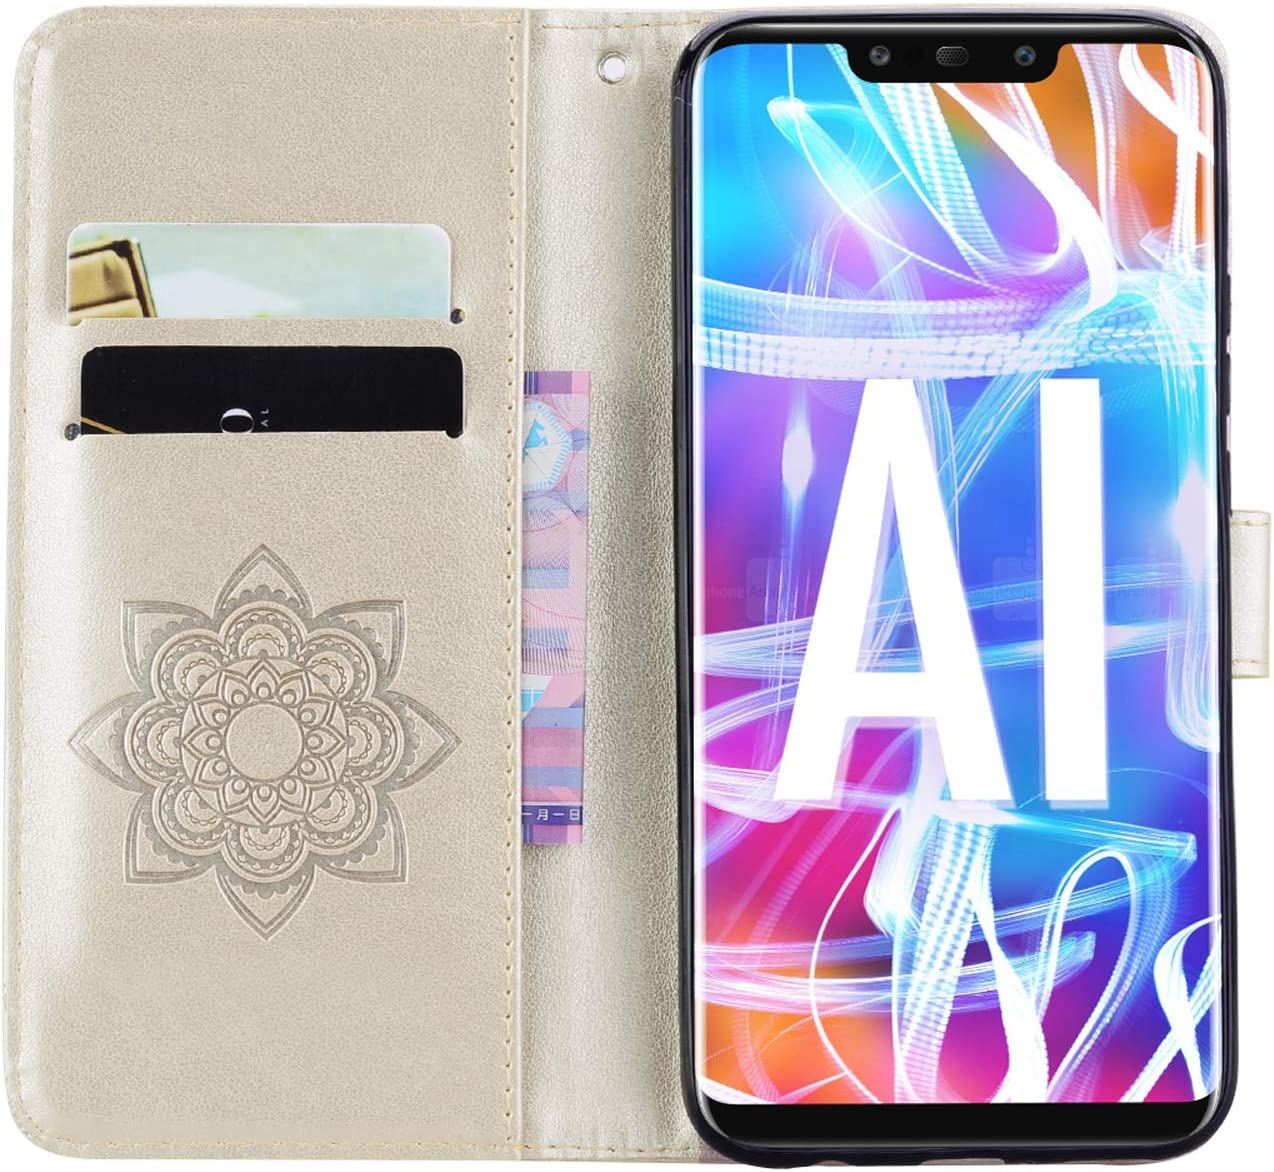 Herbests Compatible with Huawei Mate 20 Lite Wallet Case Glitter Bling Diamond Rhinestone Leather Flip Cover Embossed Mandala Flower Owl Design Protective Case Credit Card Holder,Gold